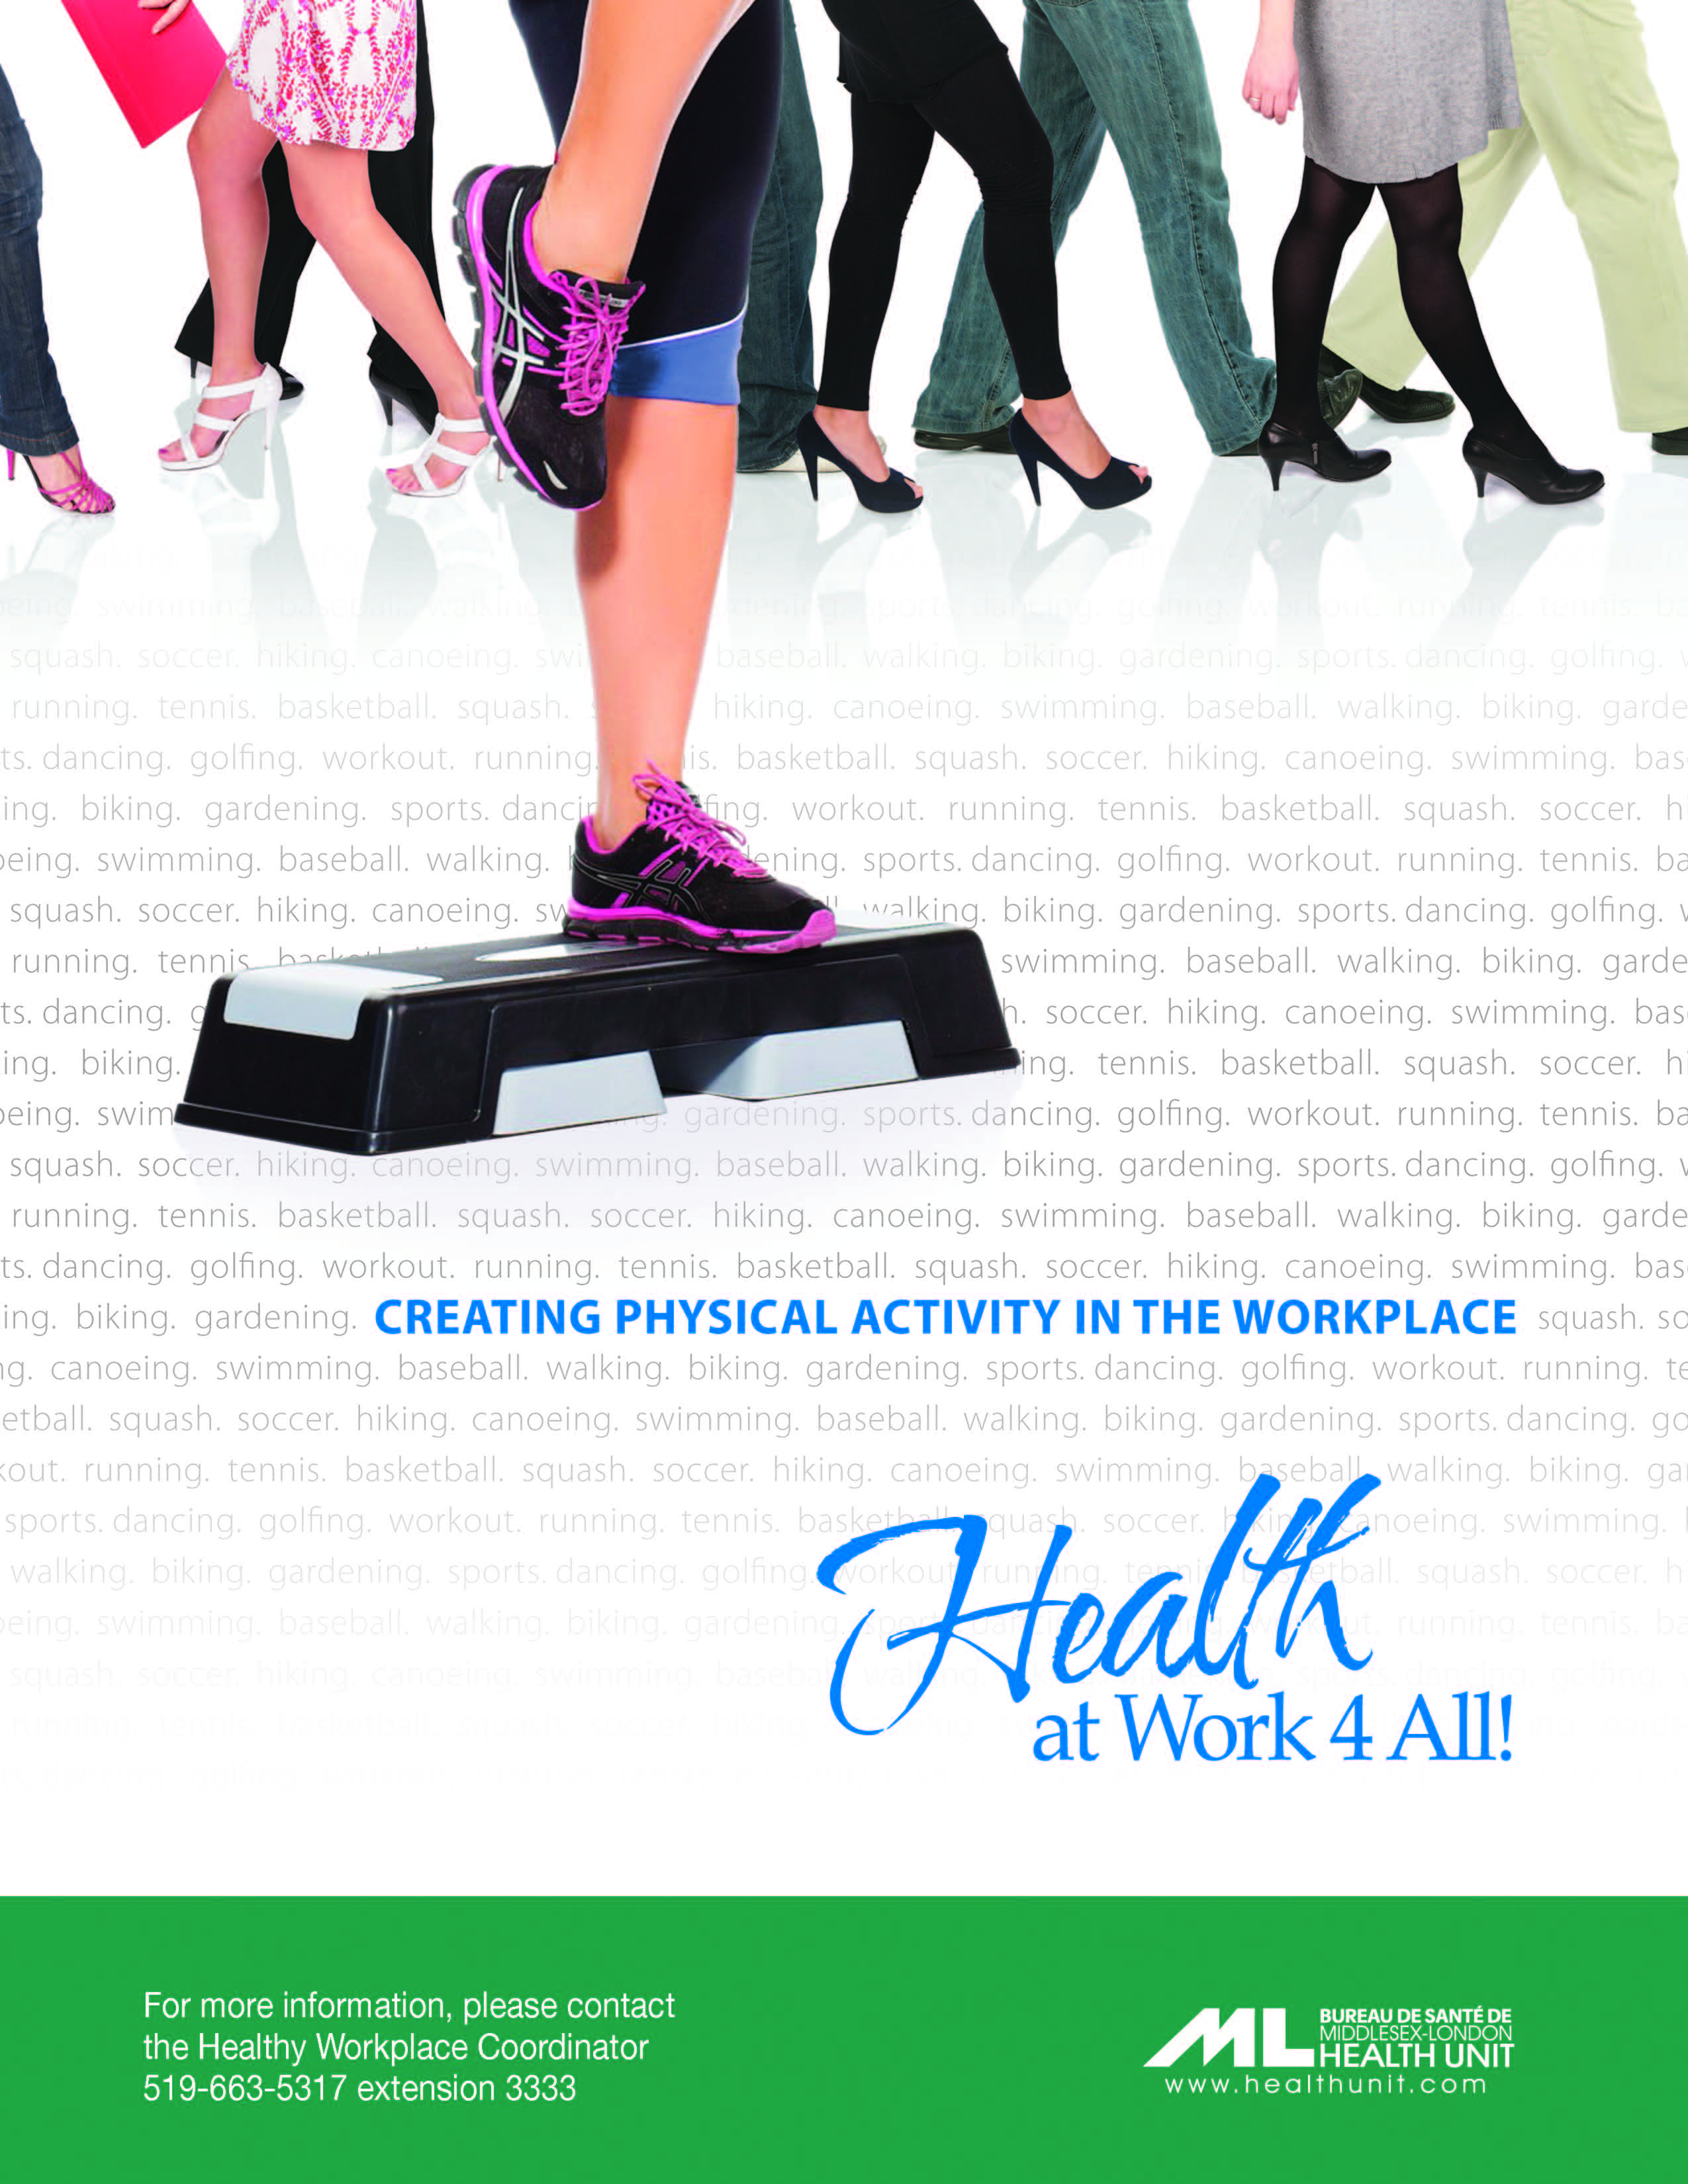 give four examples of how physical activity contributes to wellness